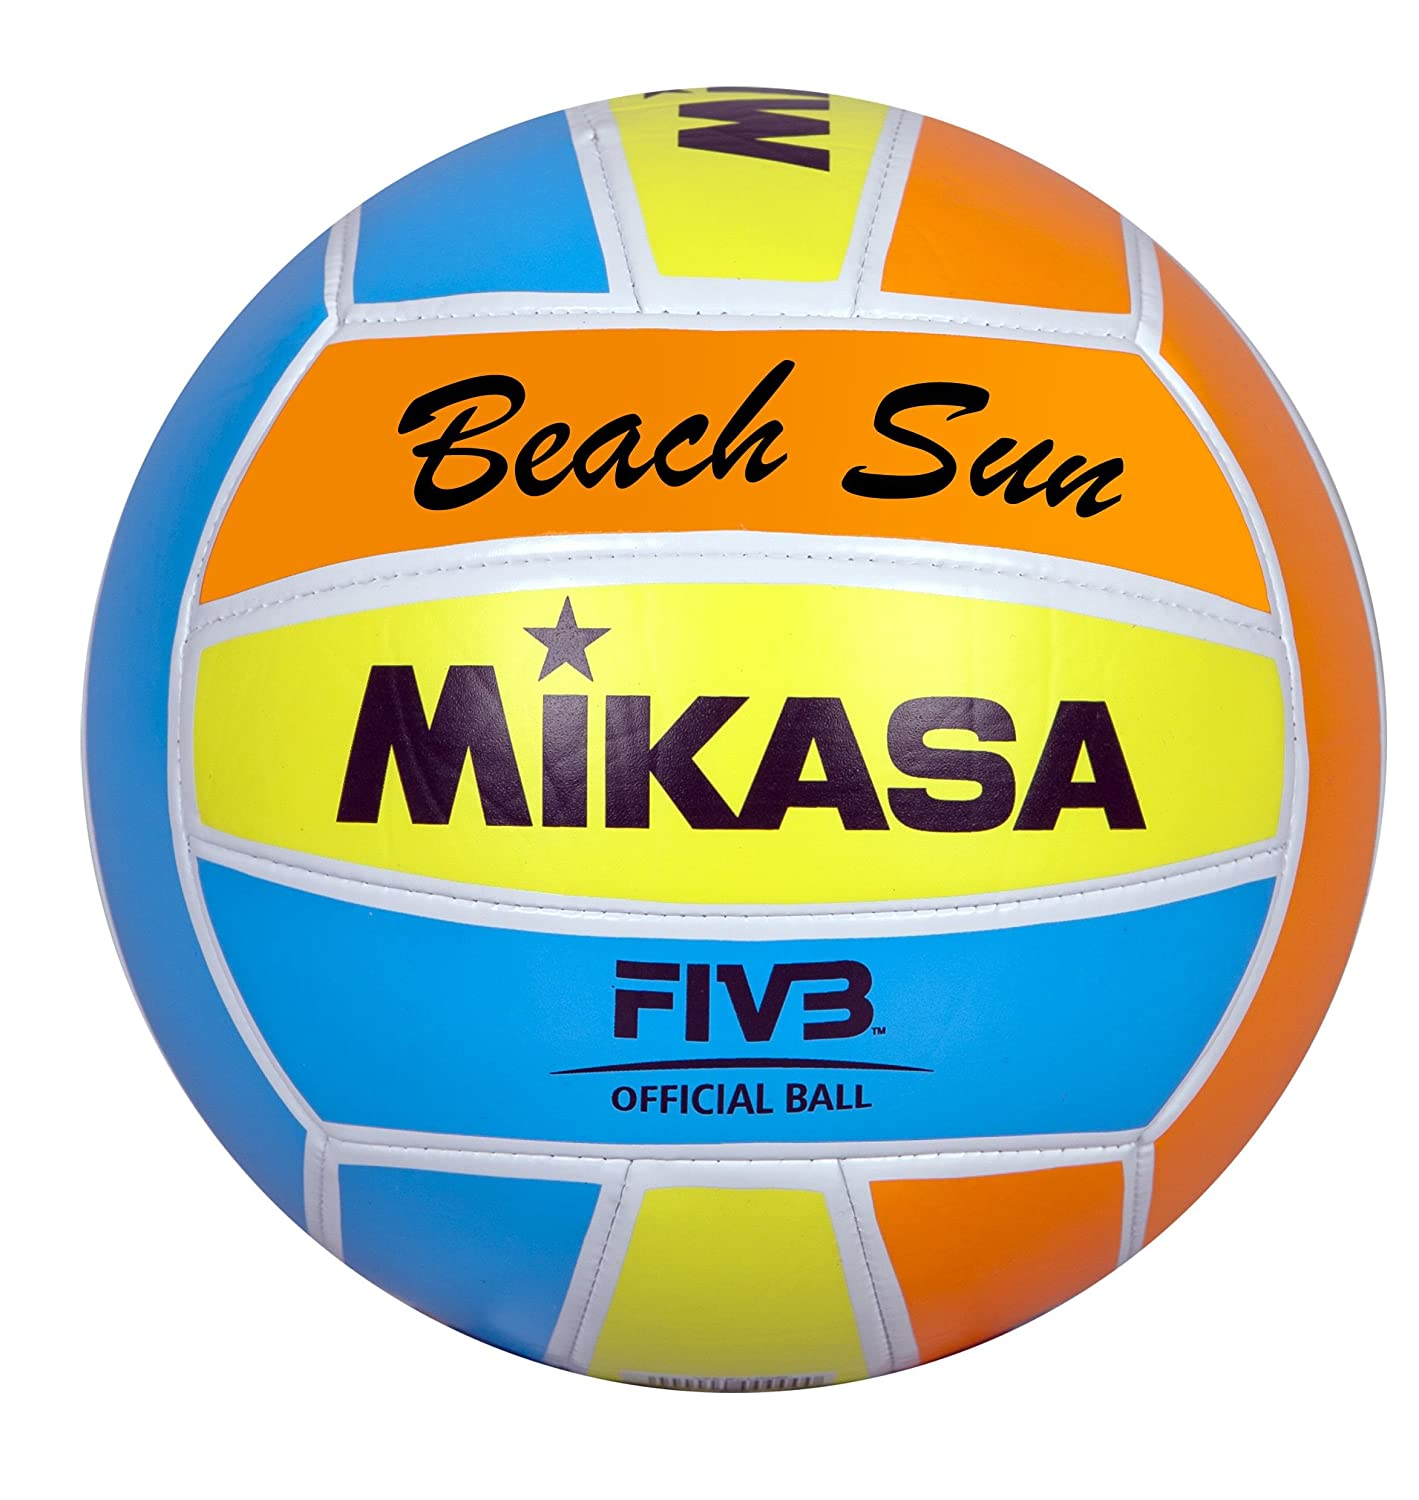 Mikasa beach volley-volleyballpaket 5 balles beach sun B00UFS98DC